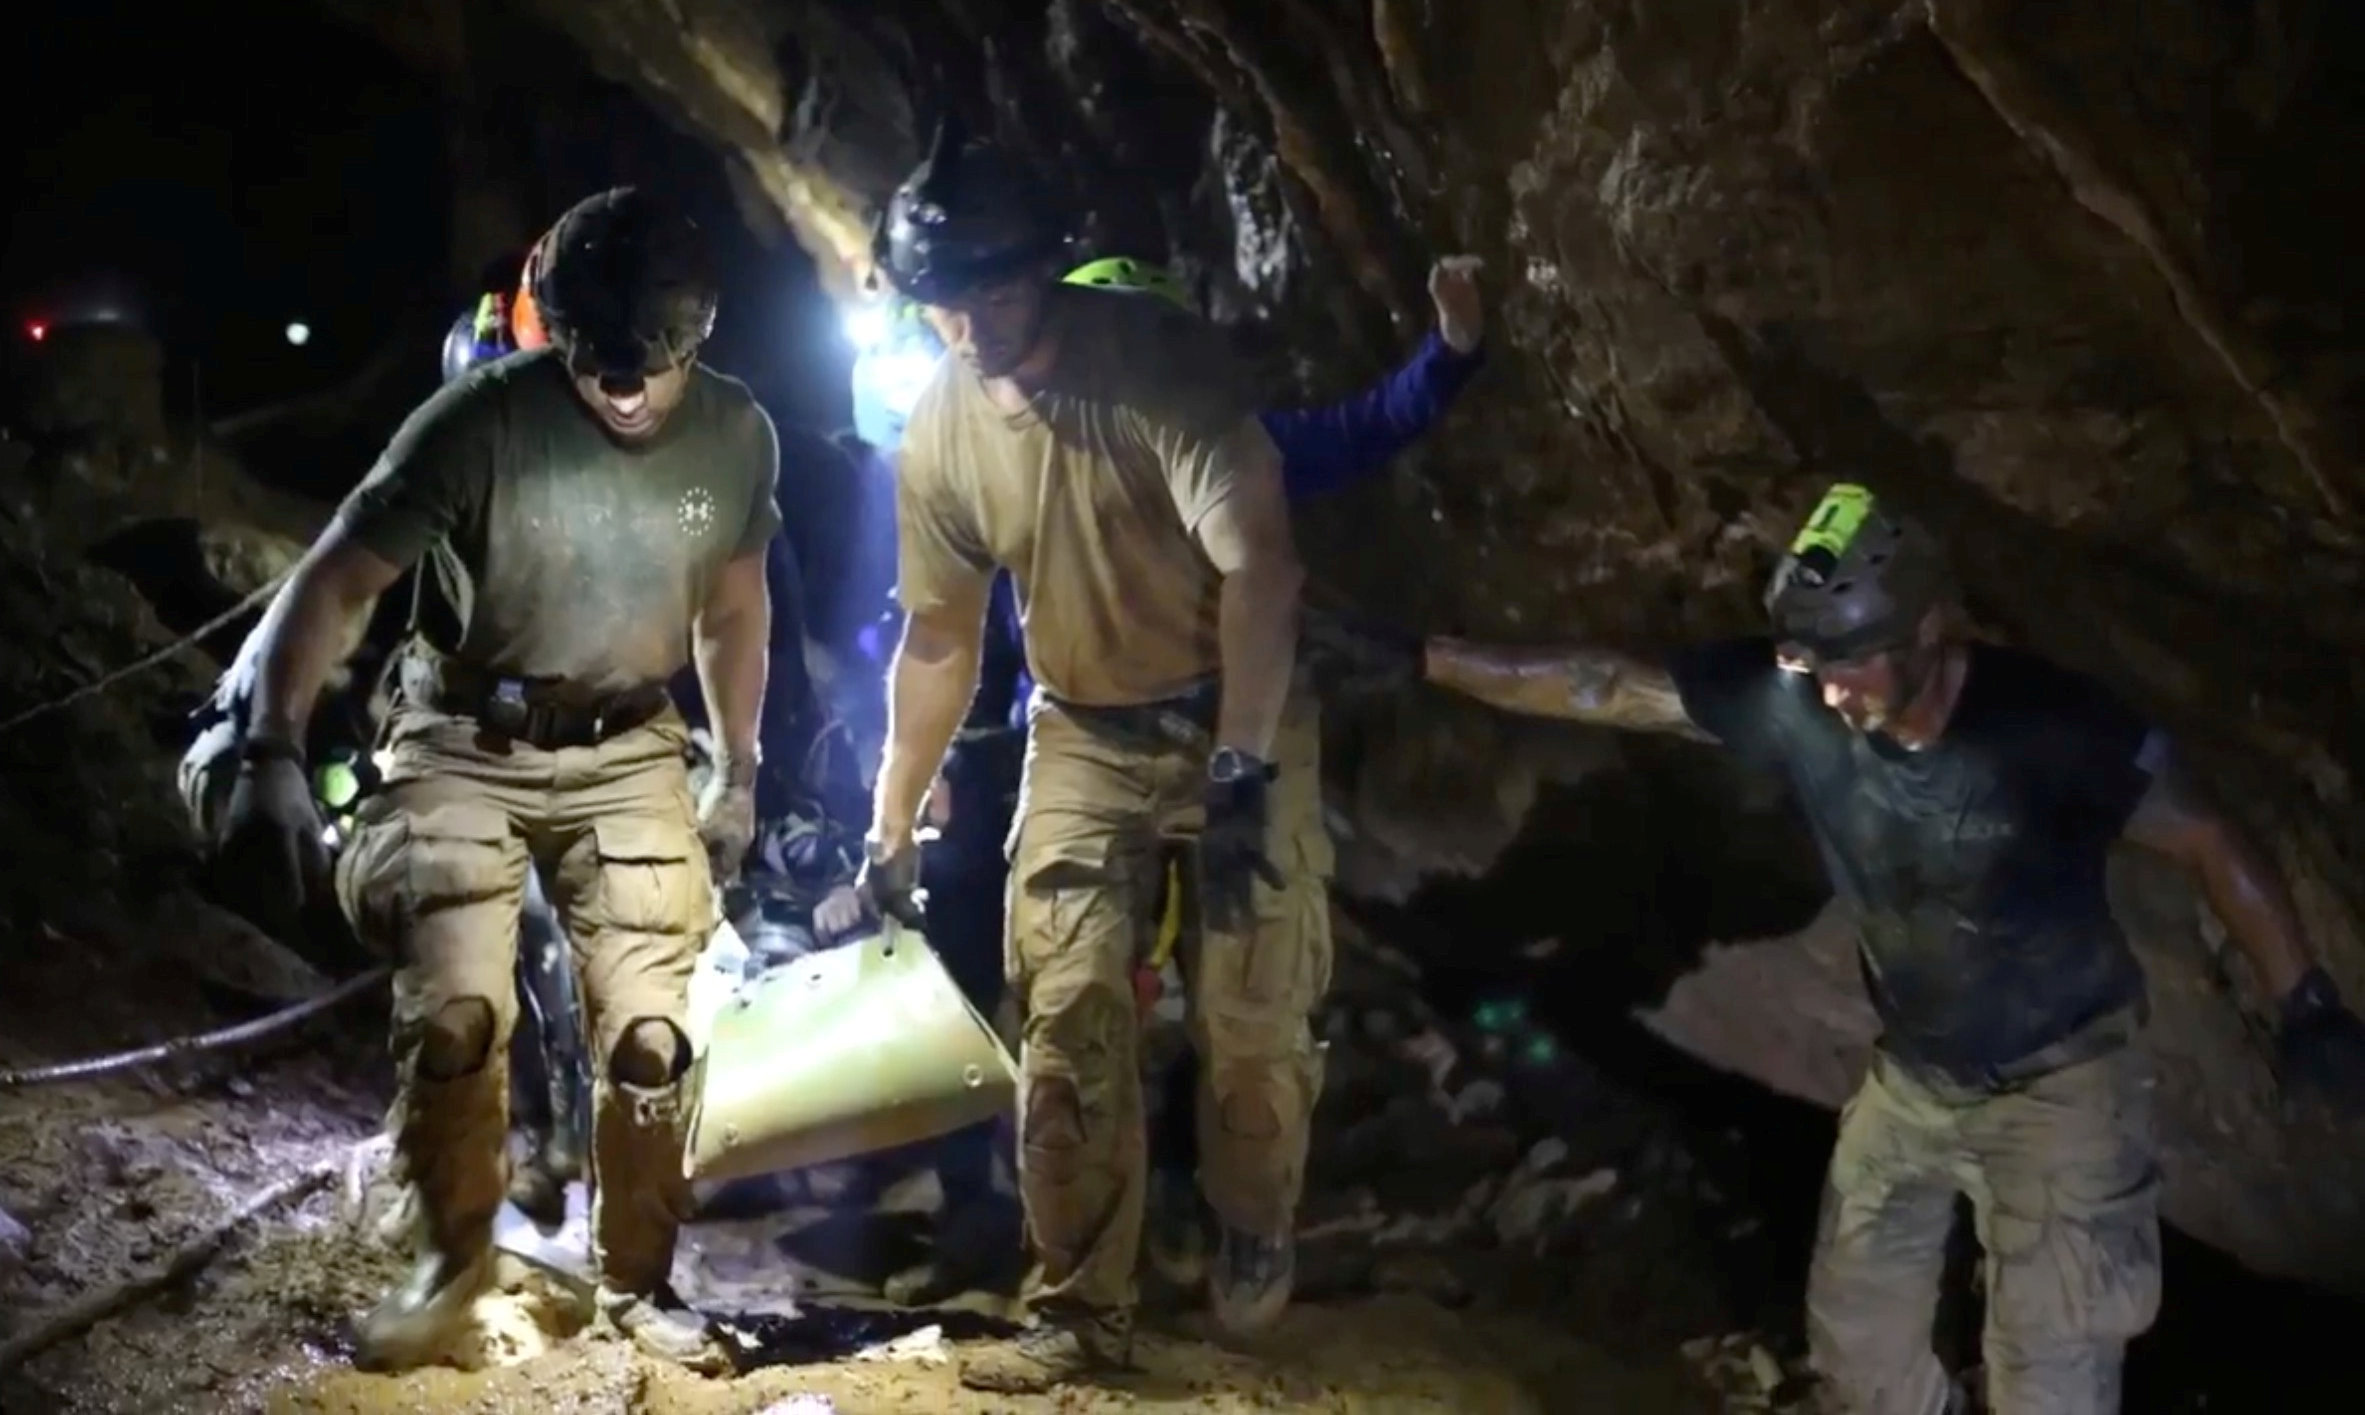 Grit, daring and beating terror - how Thailand's cave boys were rescued